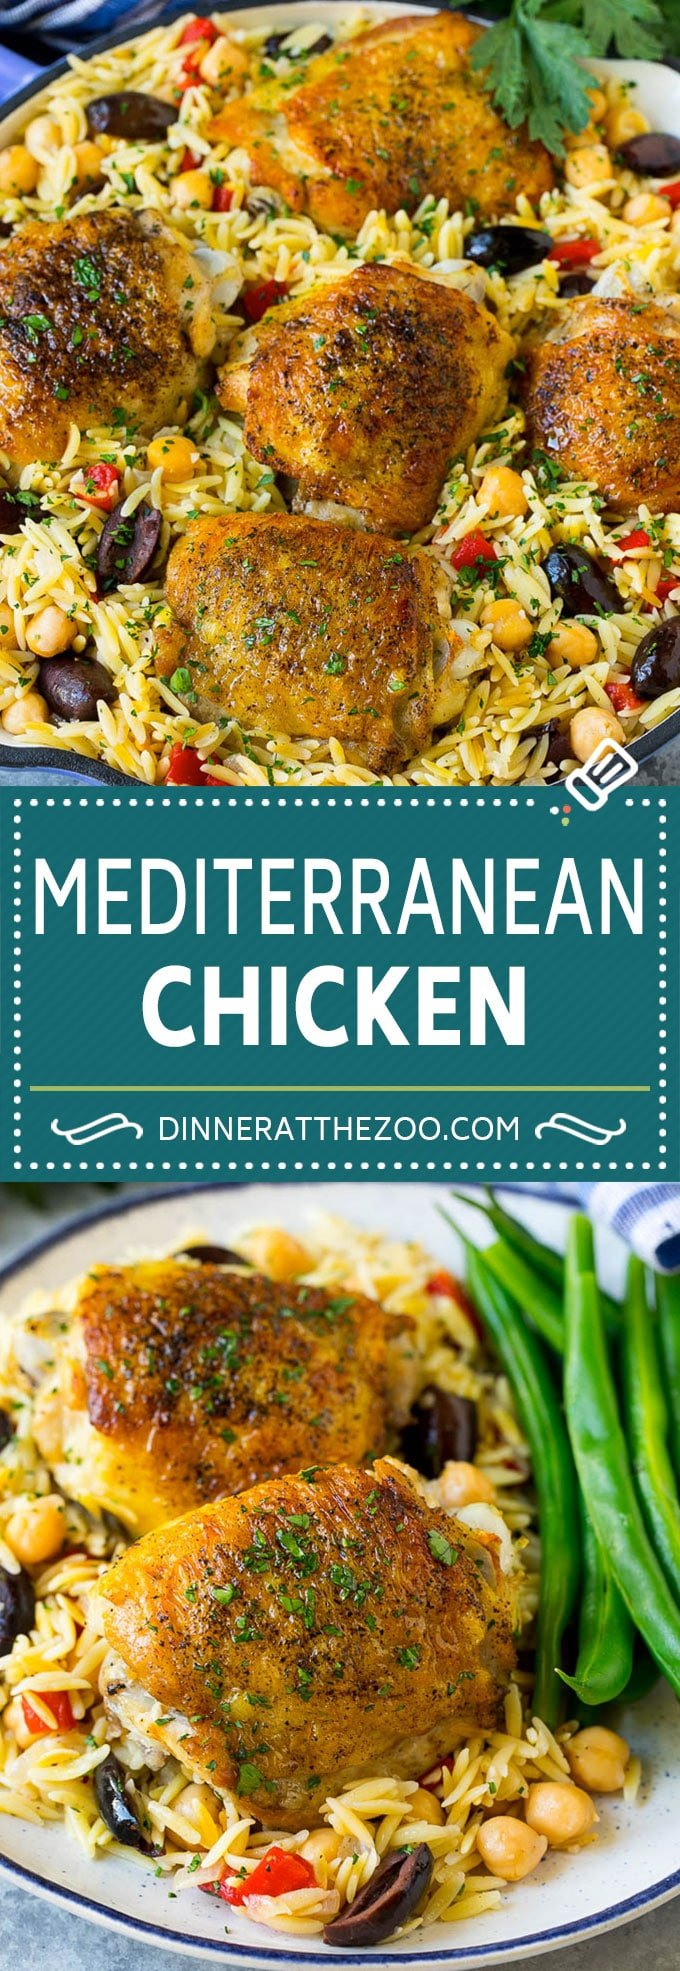 Mediterranean Chicken Recipe | One Pot Chicken #chicken #pasta #healthy #onepot #dinner #dinneratthezoo